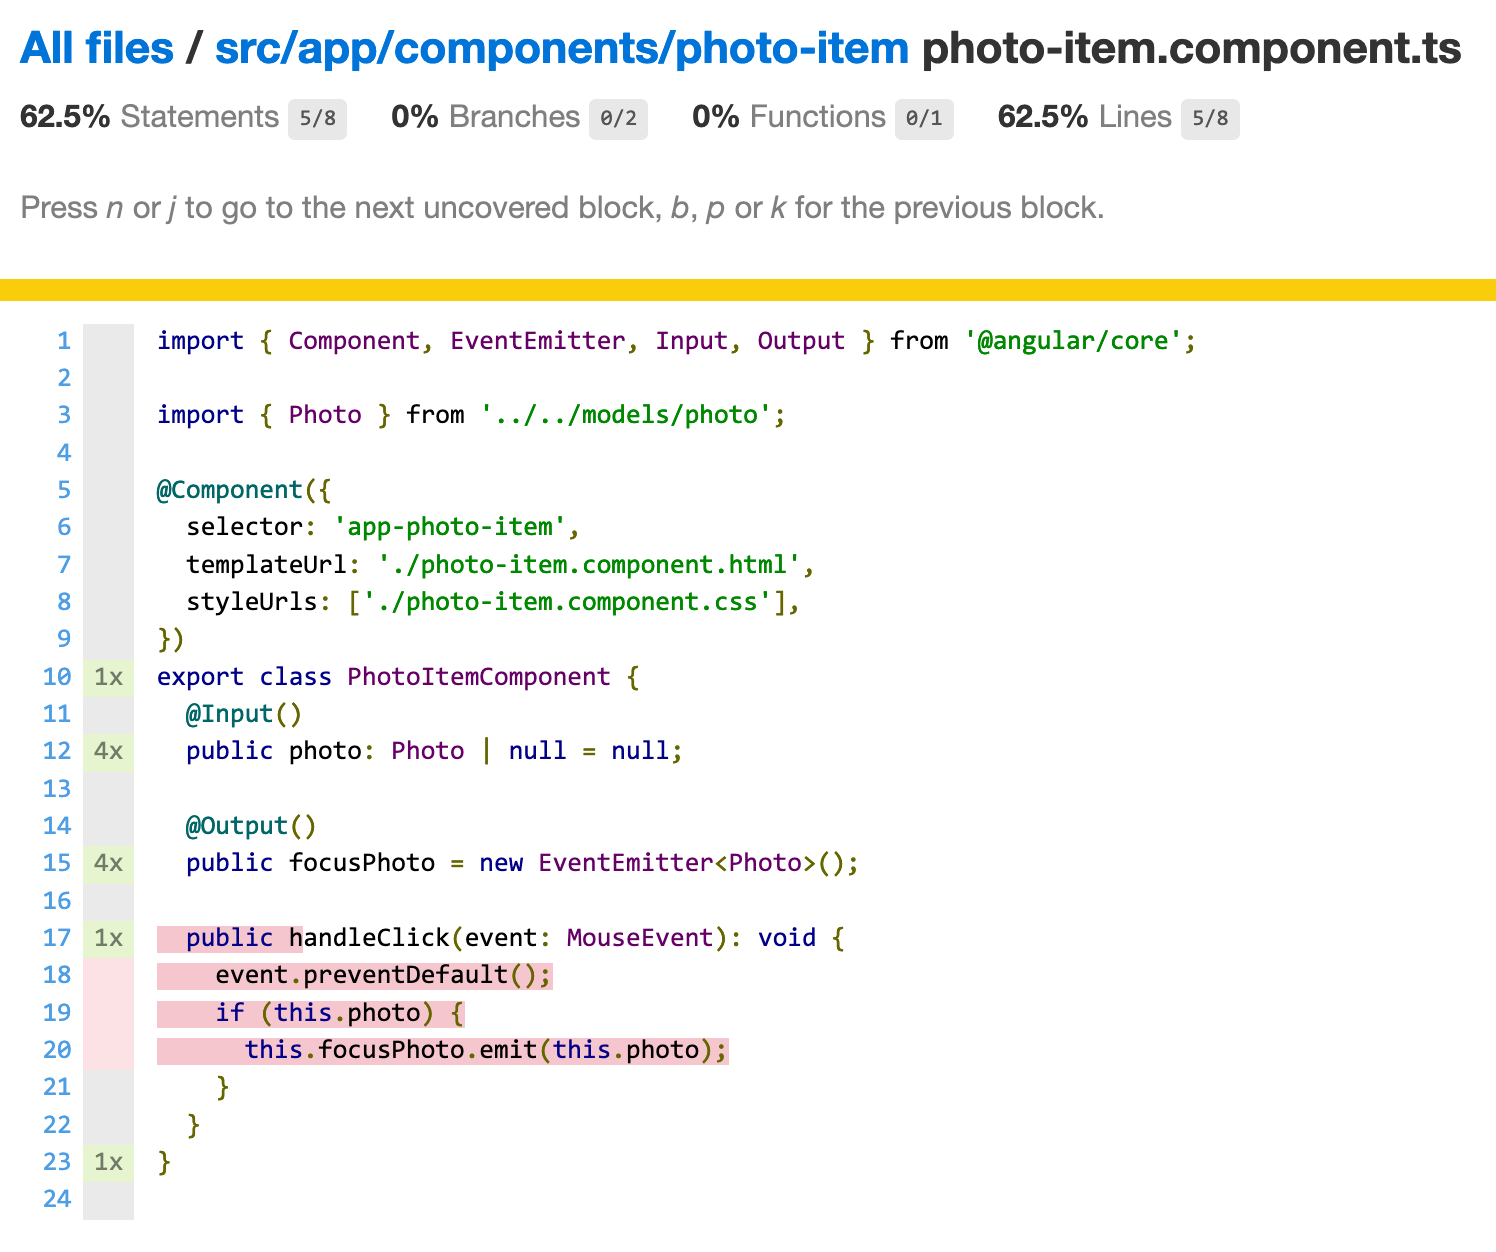 Code coverage report for photo-item.component.ts. The method handleClick is not called by the test.